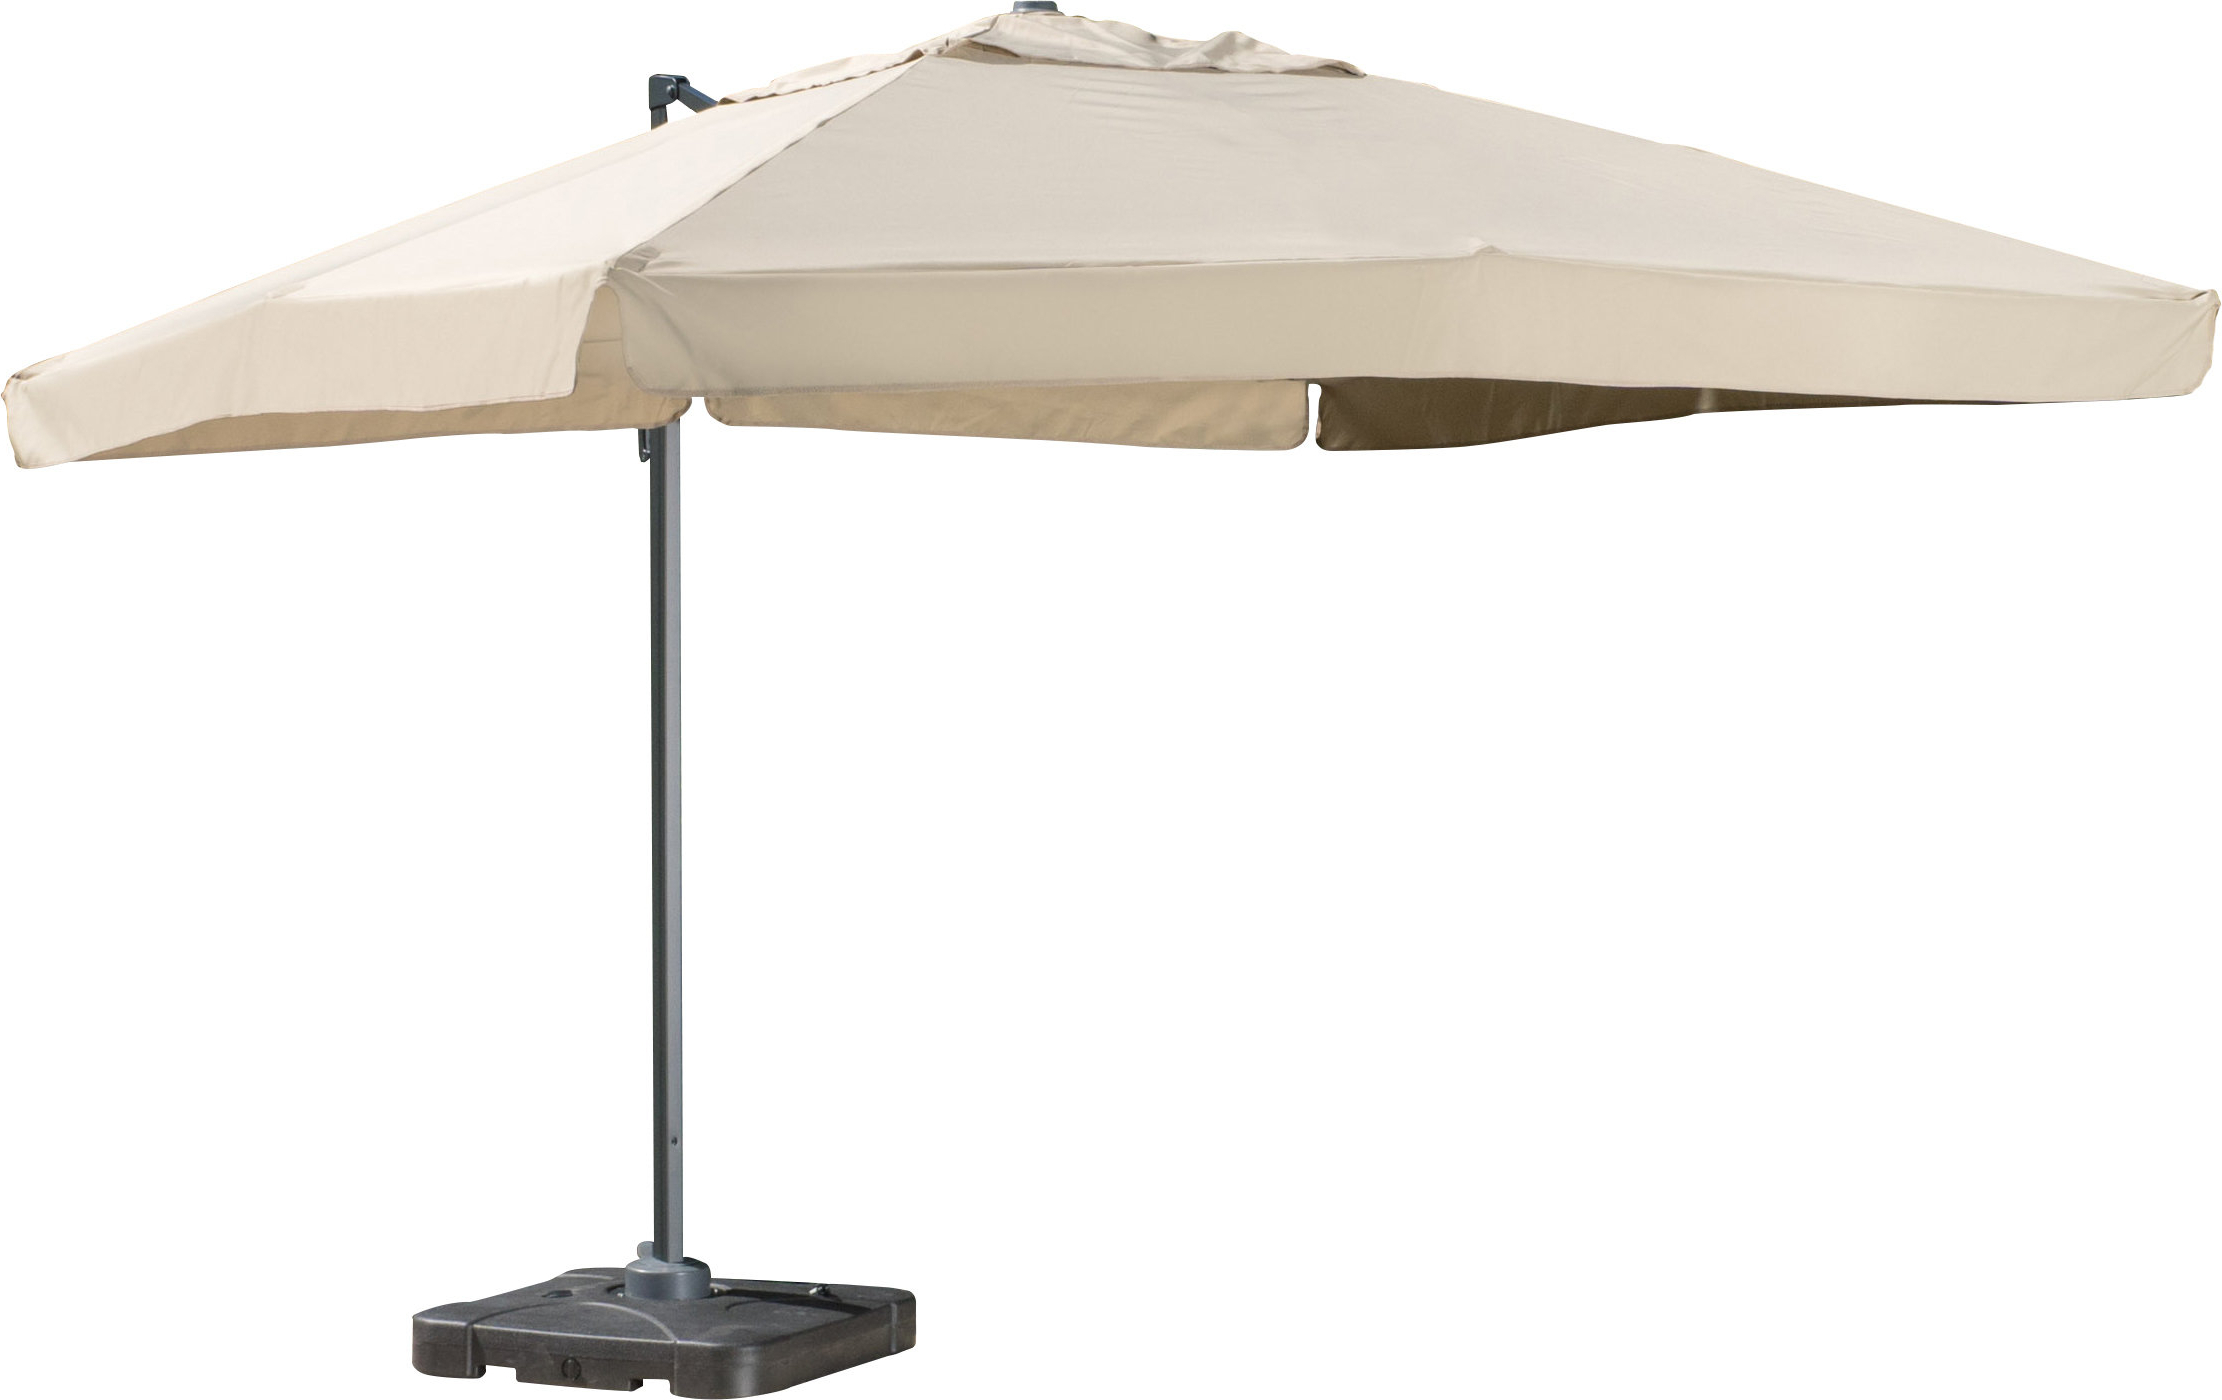 Bondi 9.8' Square Cantilever Umbrella Within Latest Freda Cantilever Umbrellas (Gallery 16 of 20)